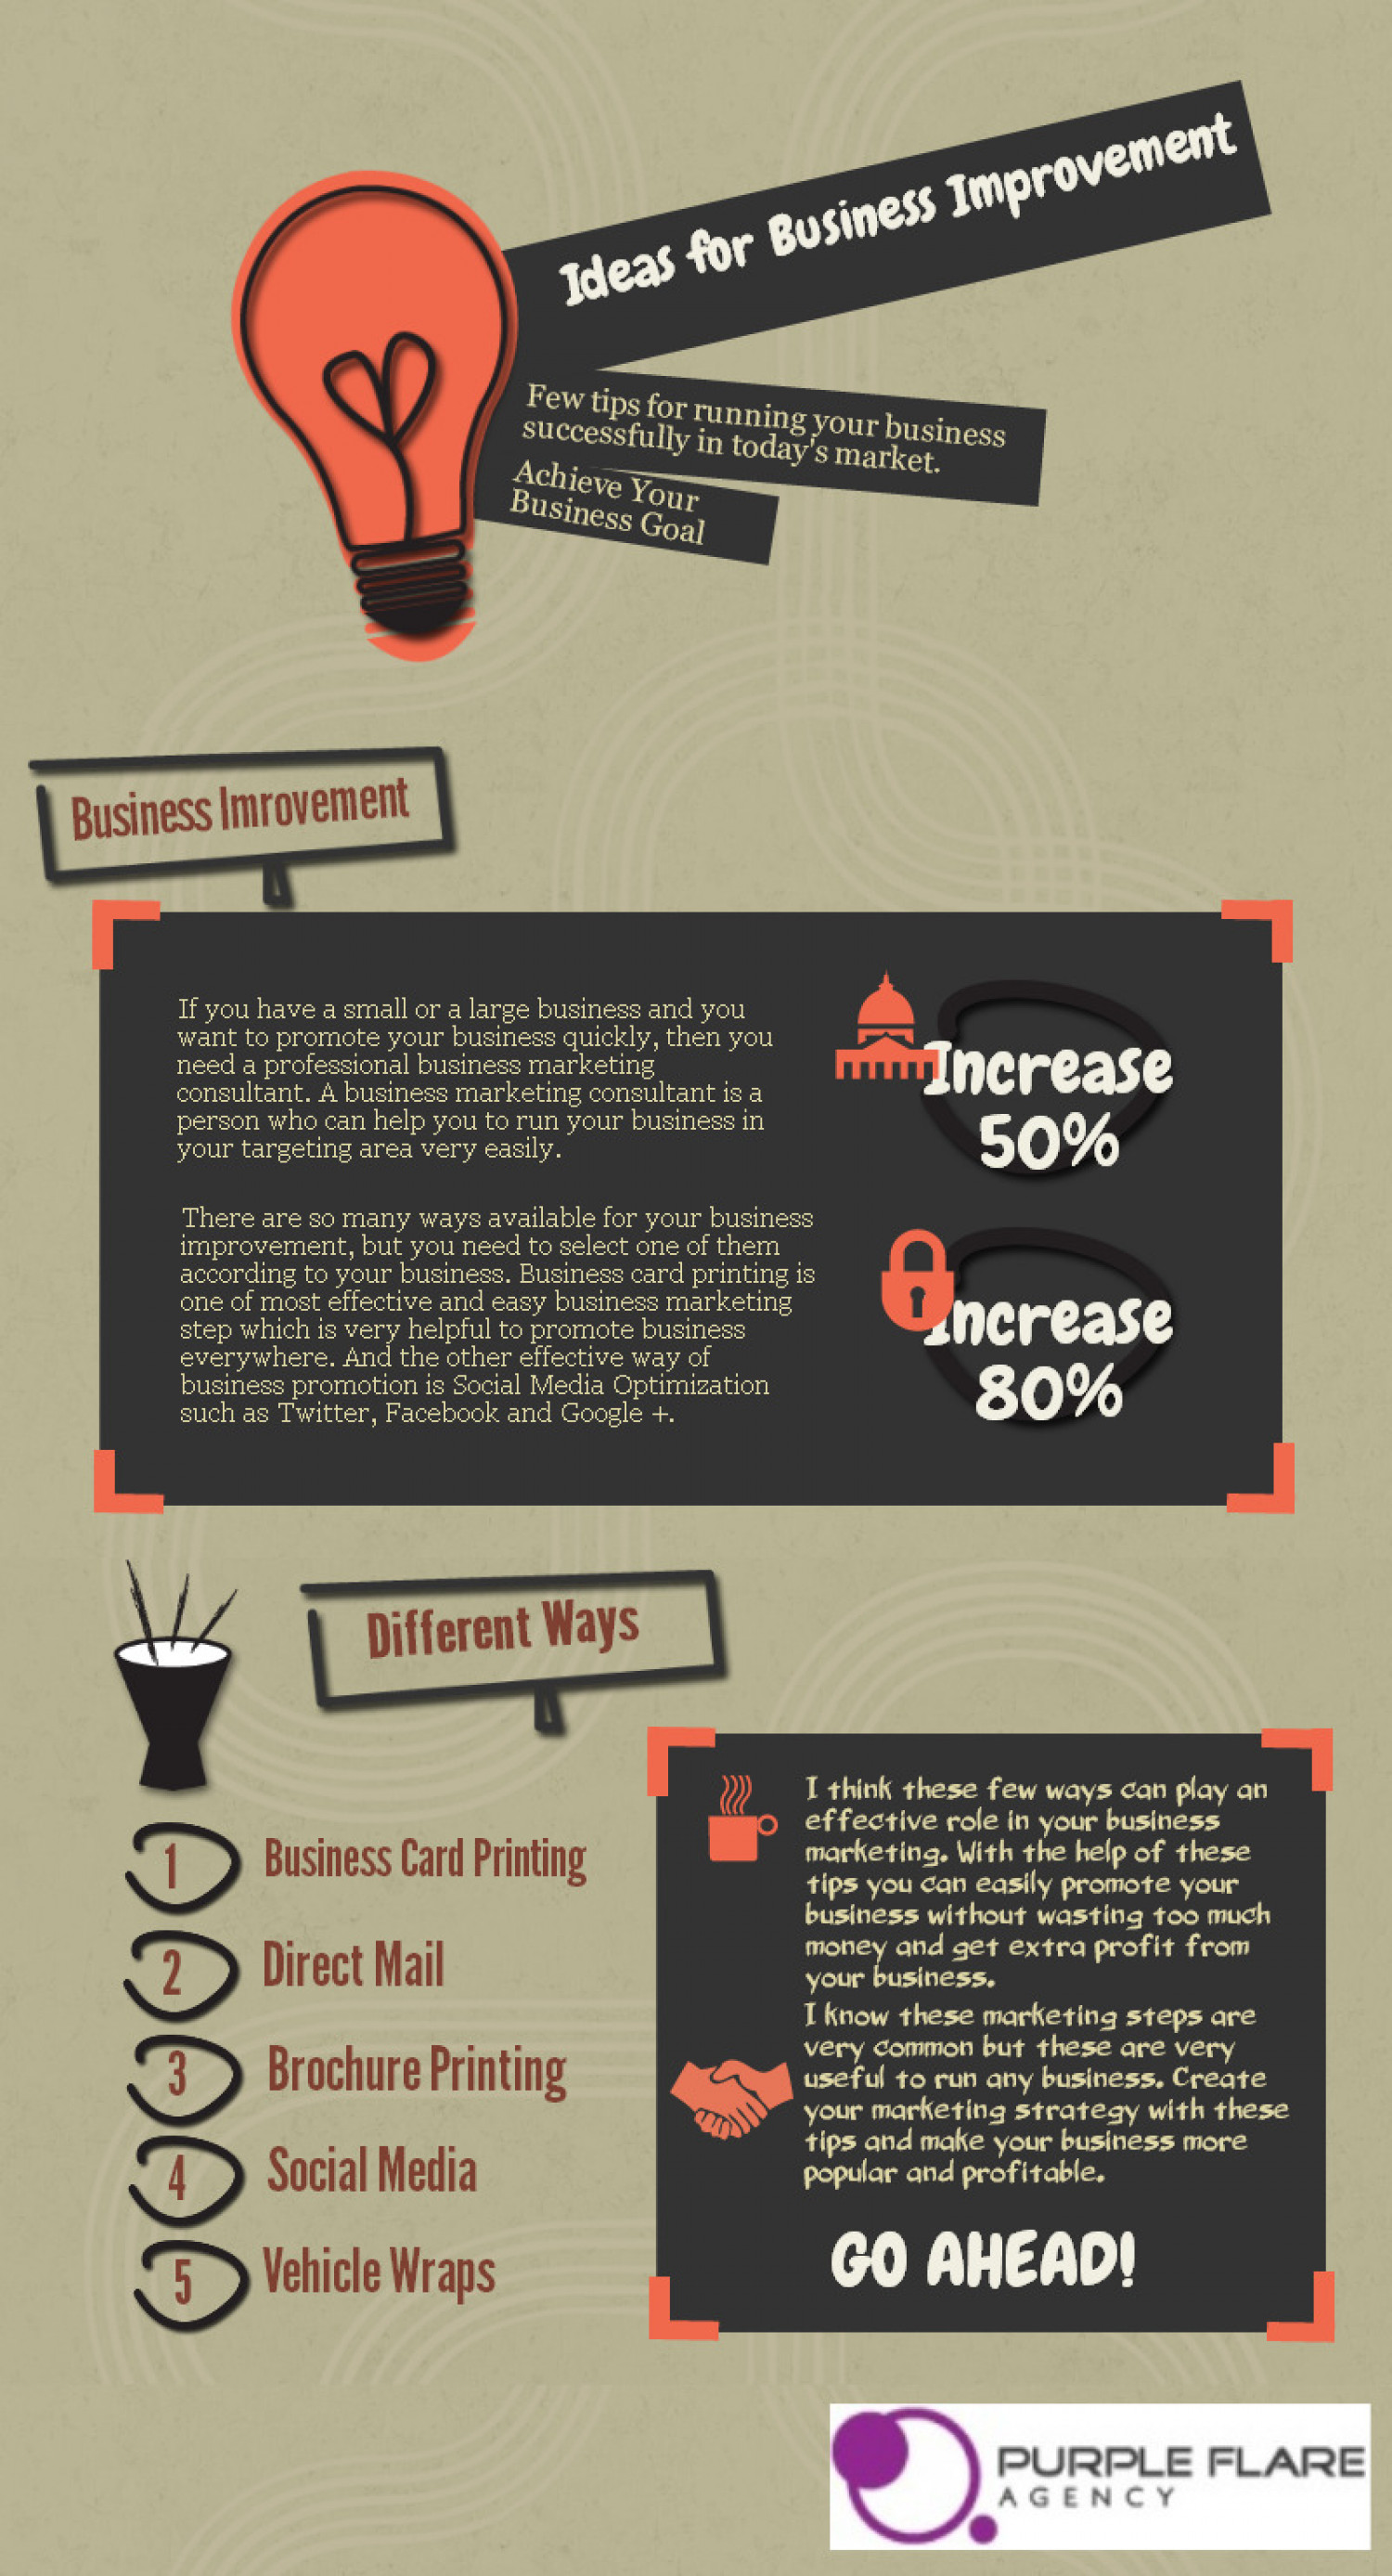 Ideas for Business Improvement Infographic